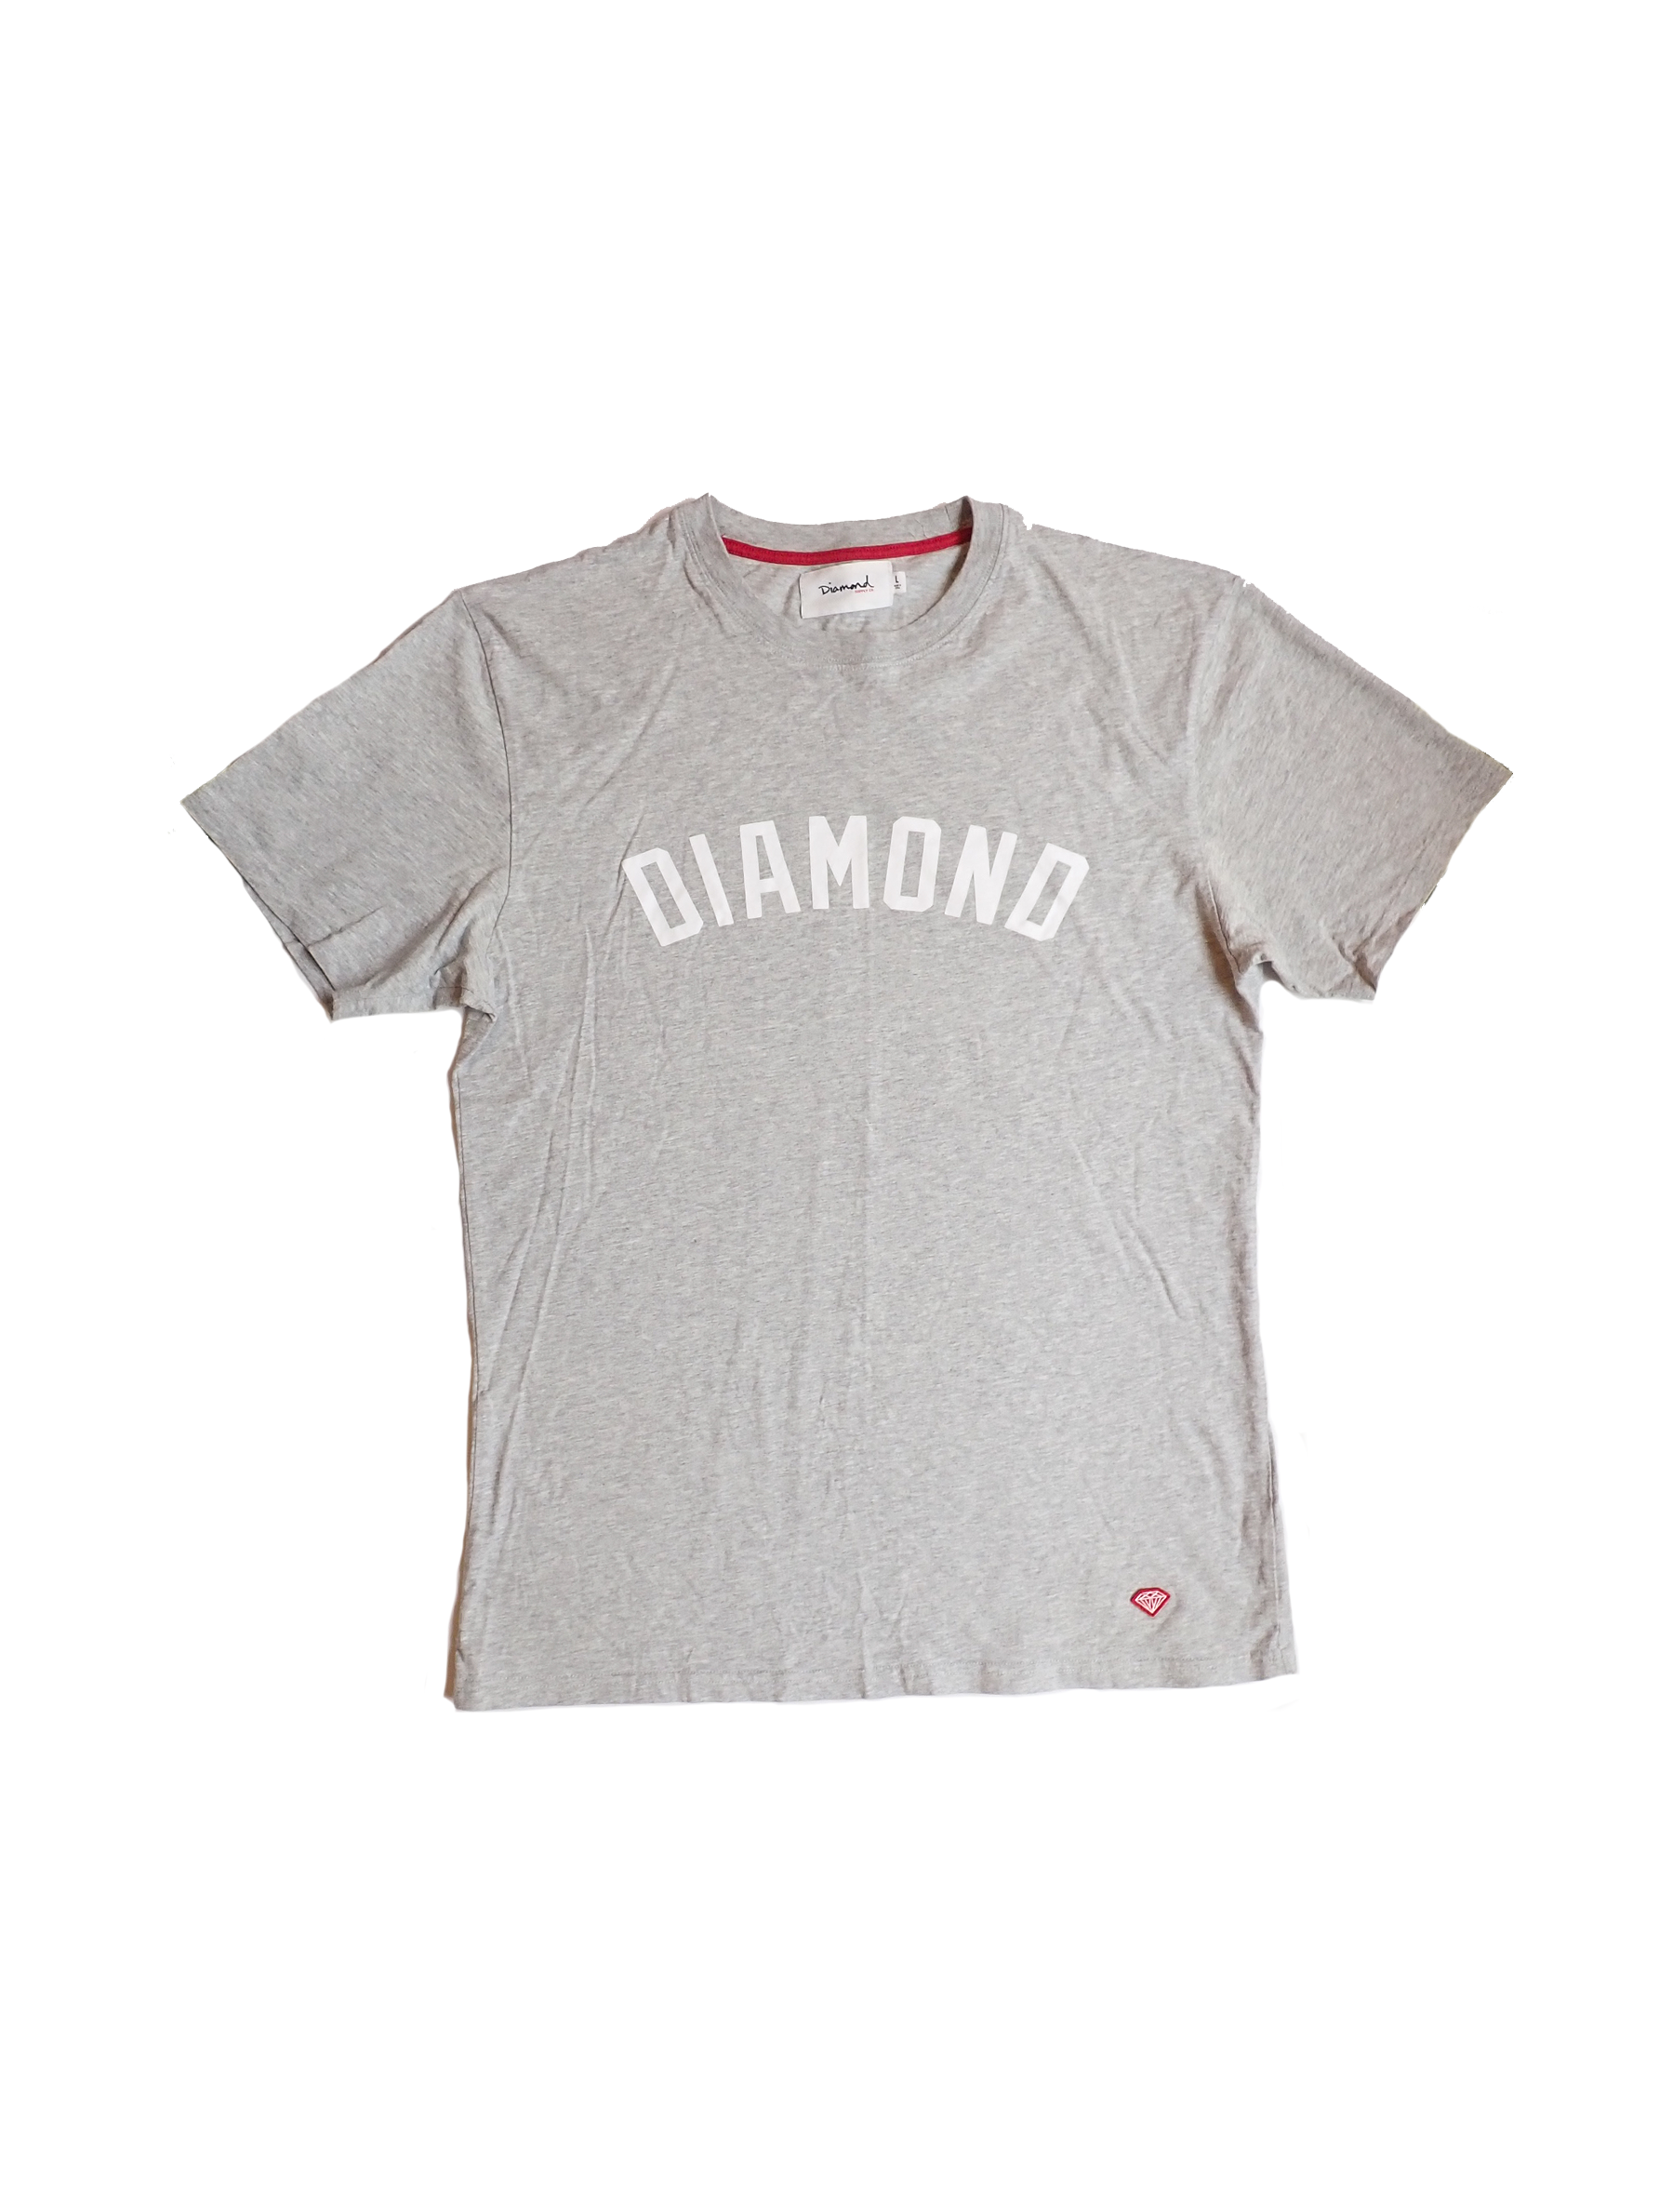 Diamond Supply Co Grey T Shirt